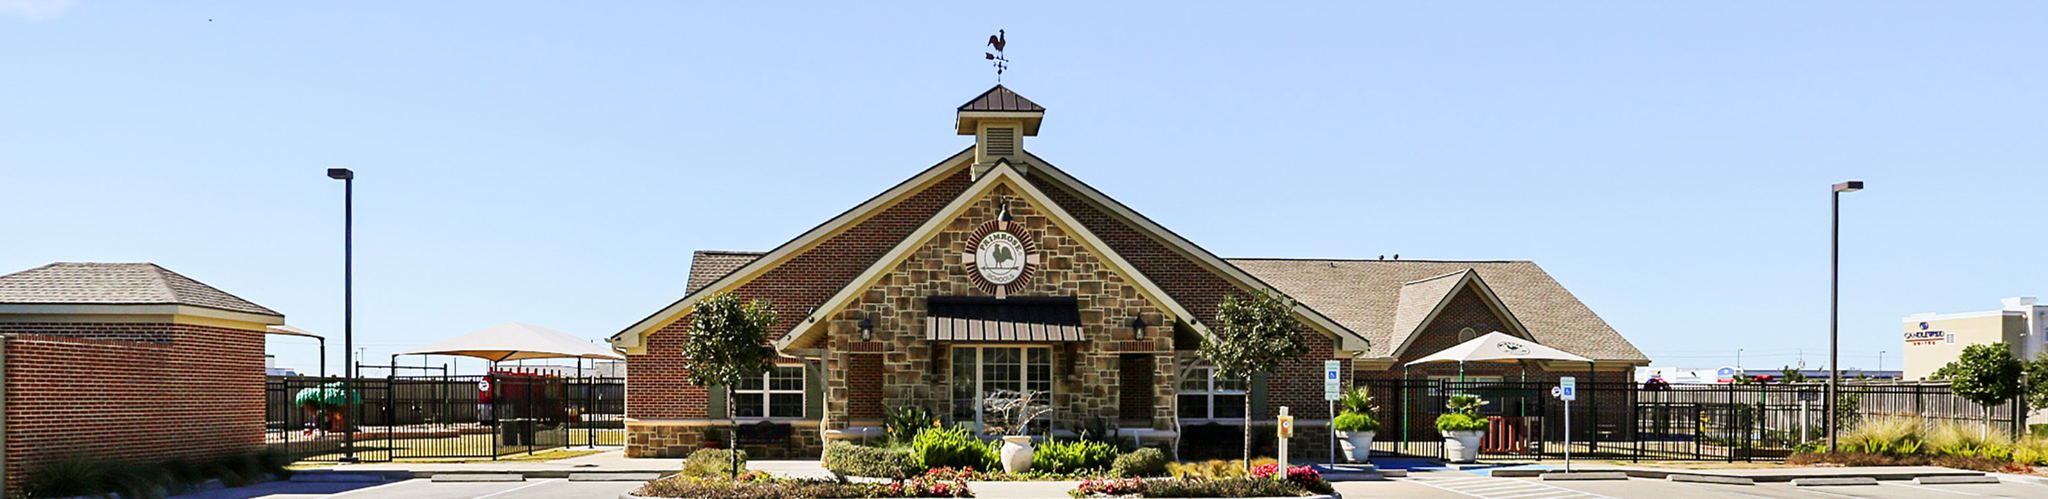 Exterior of a Primrose School of League City at Victory Lakes